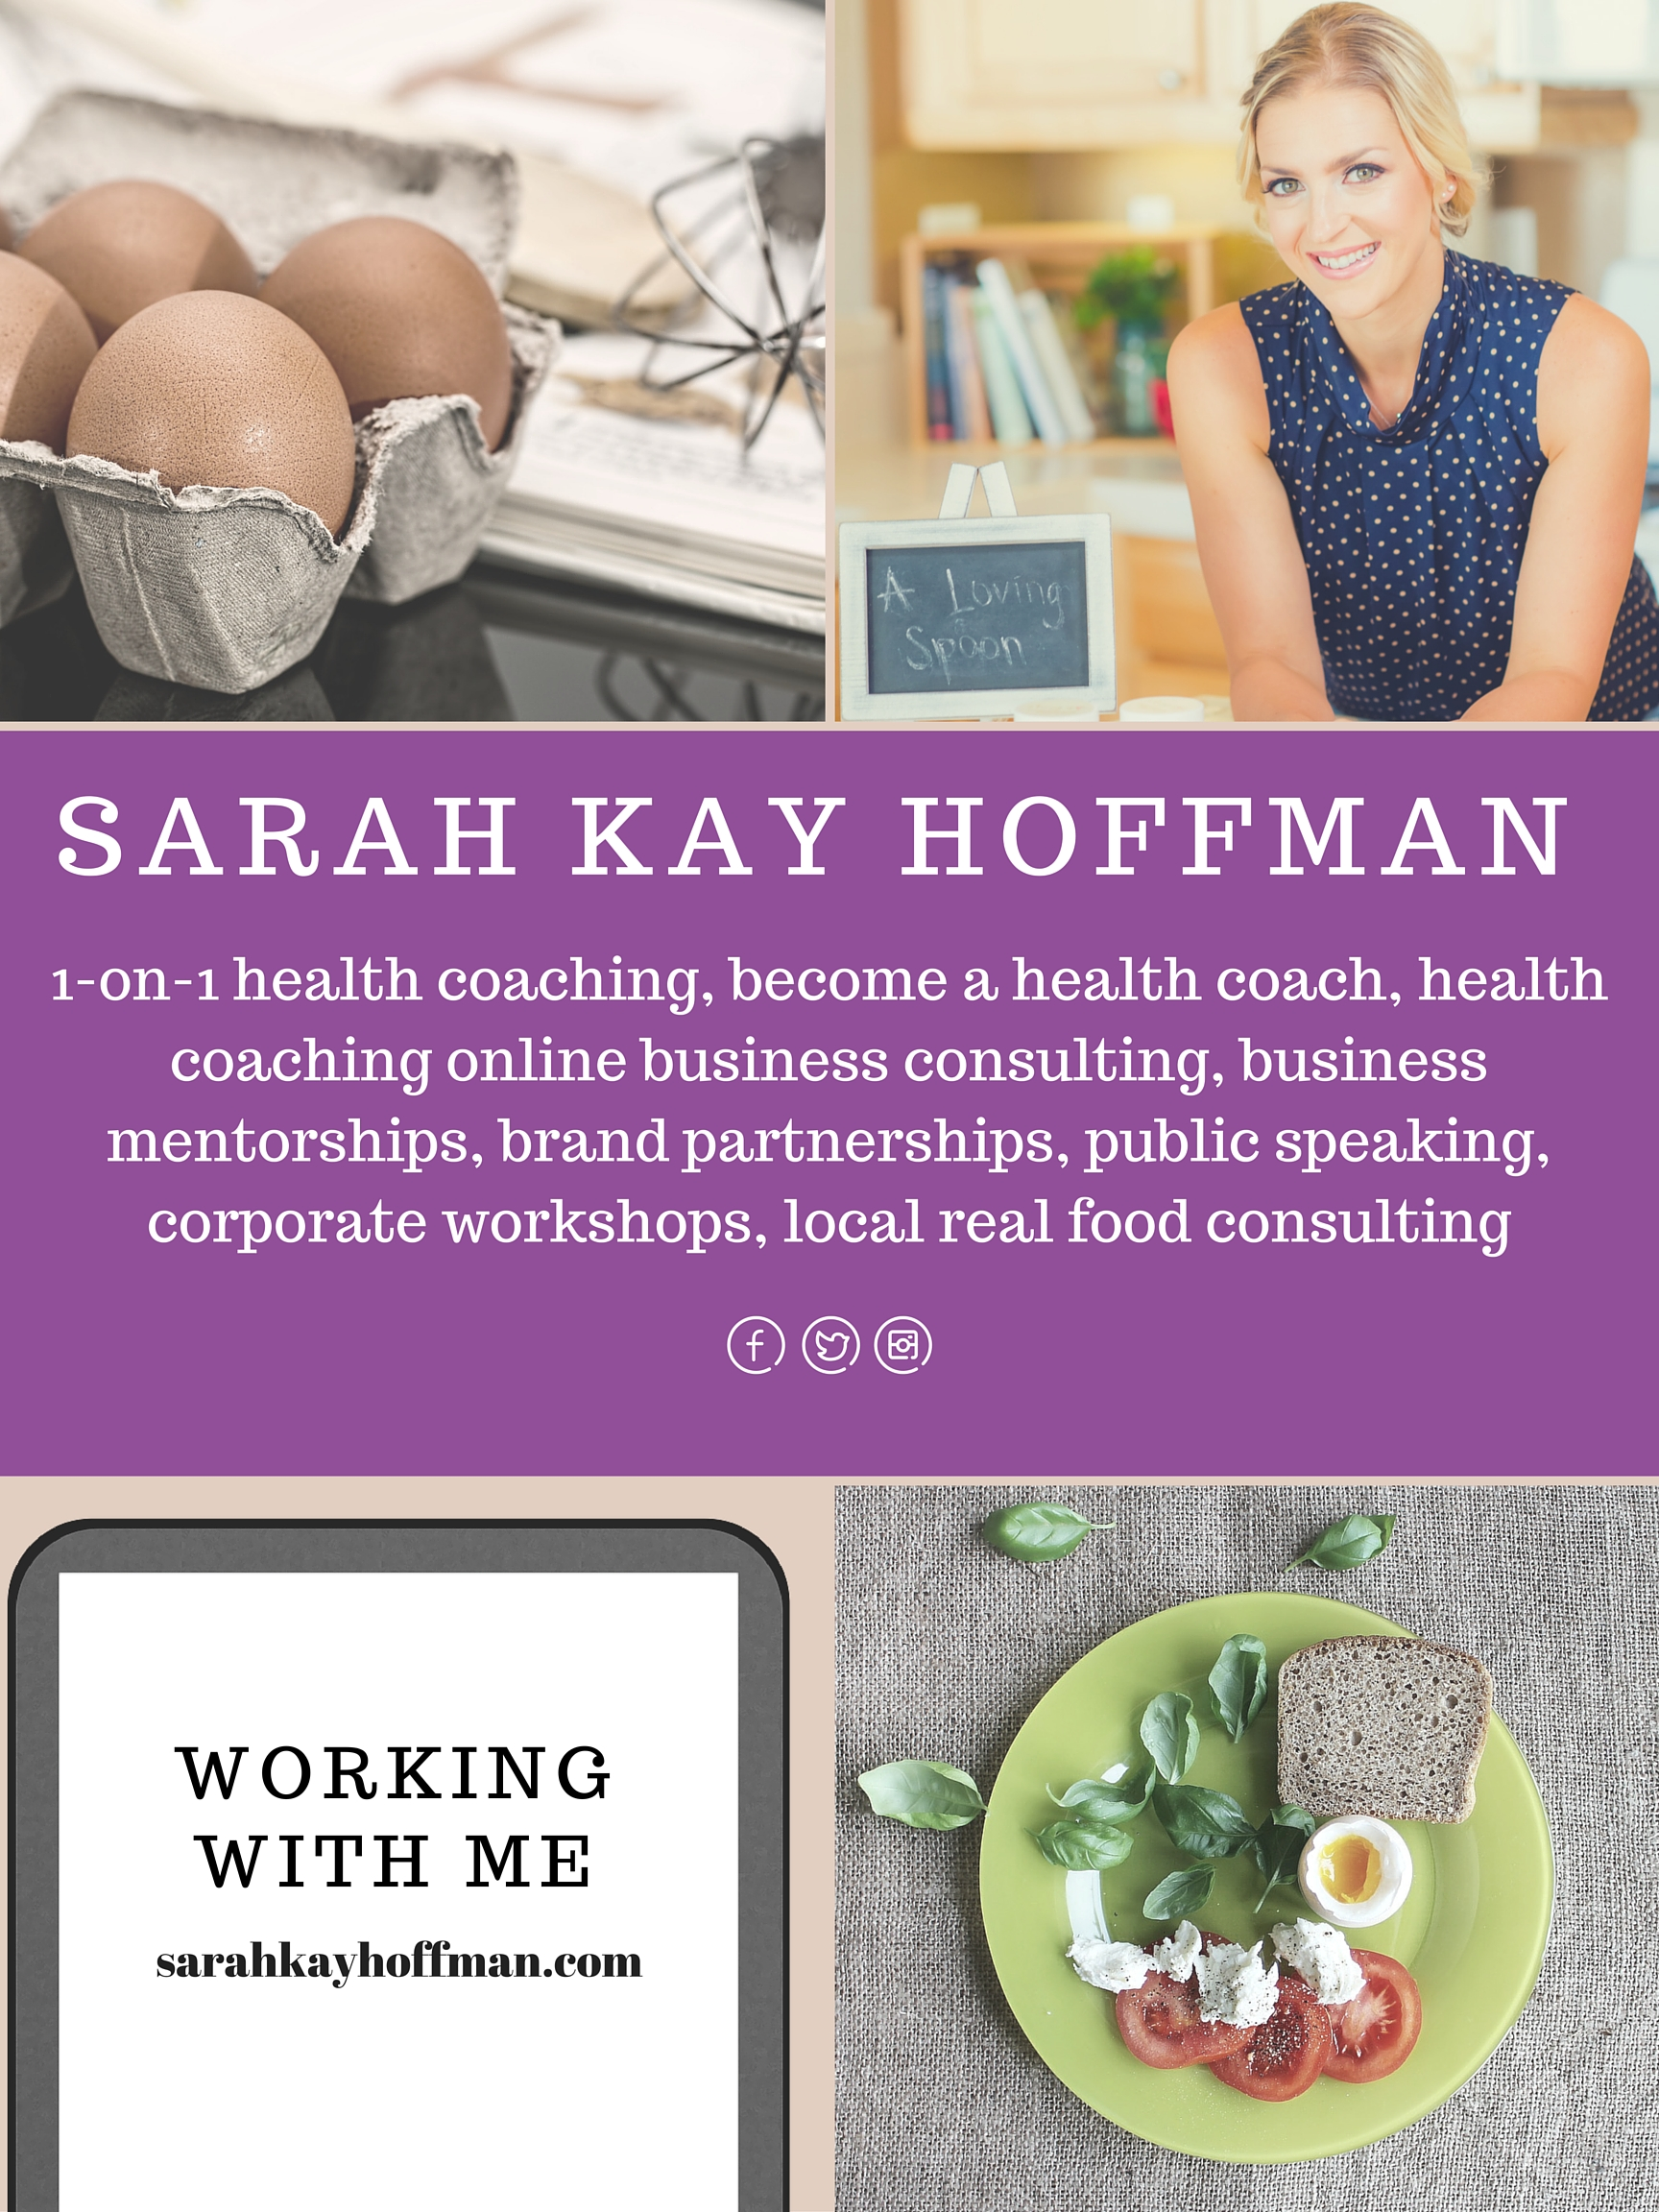 How to Work with Sarah Kay Hoffman sarahkayhoffman.com